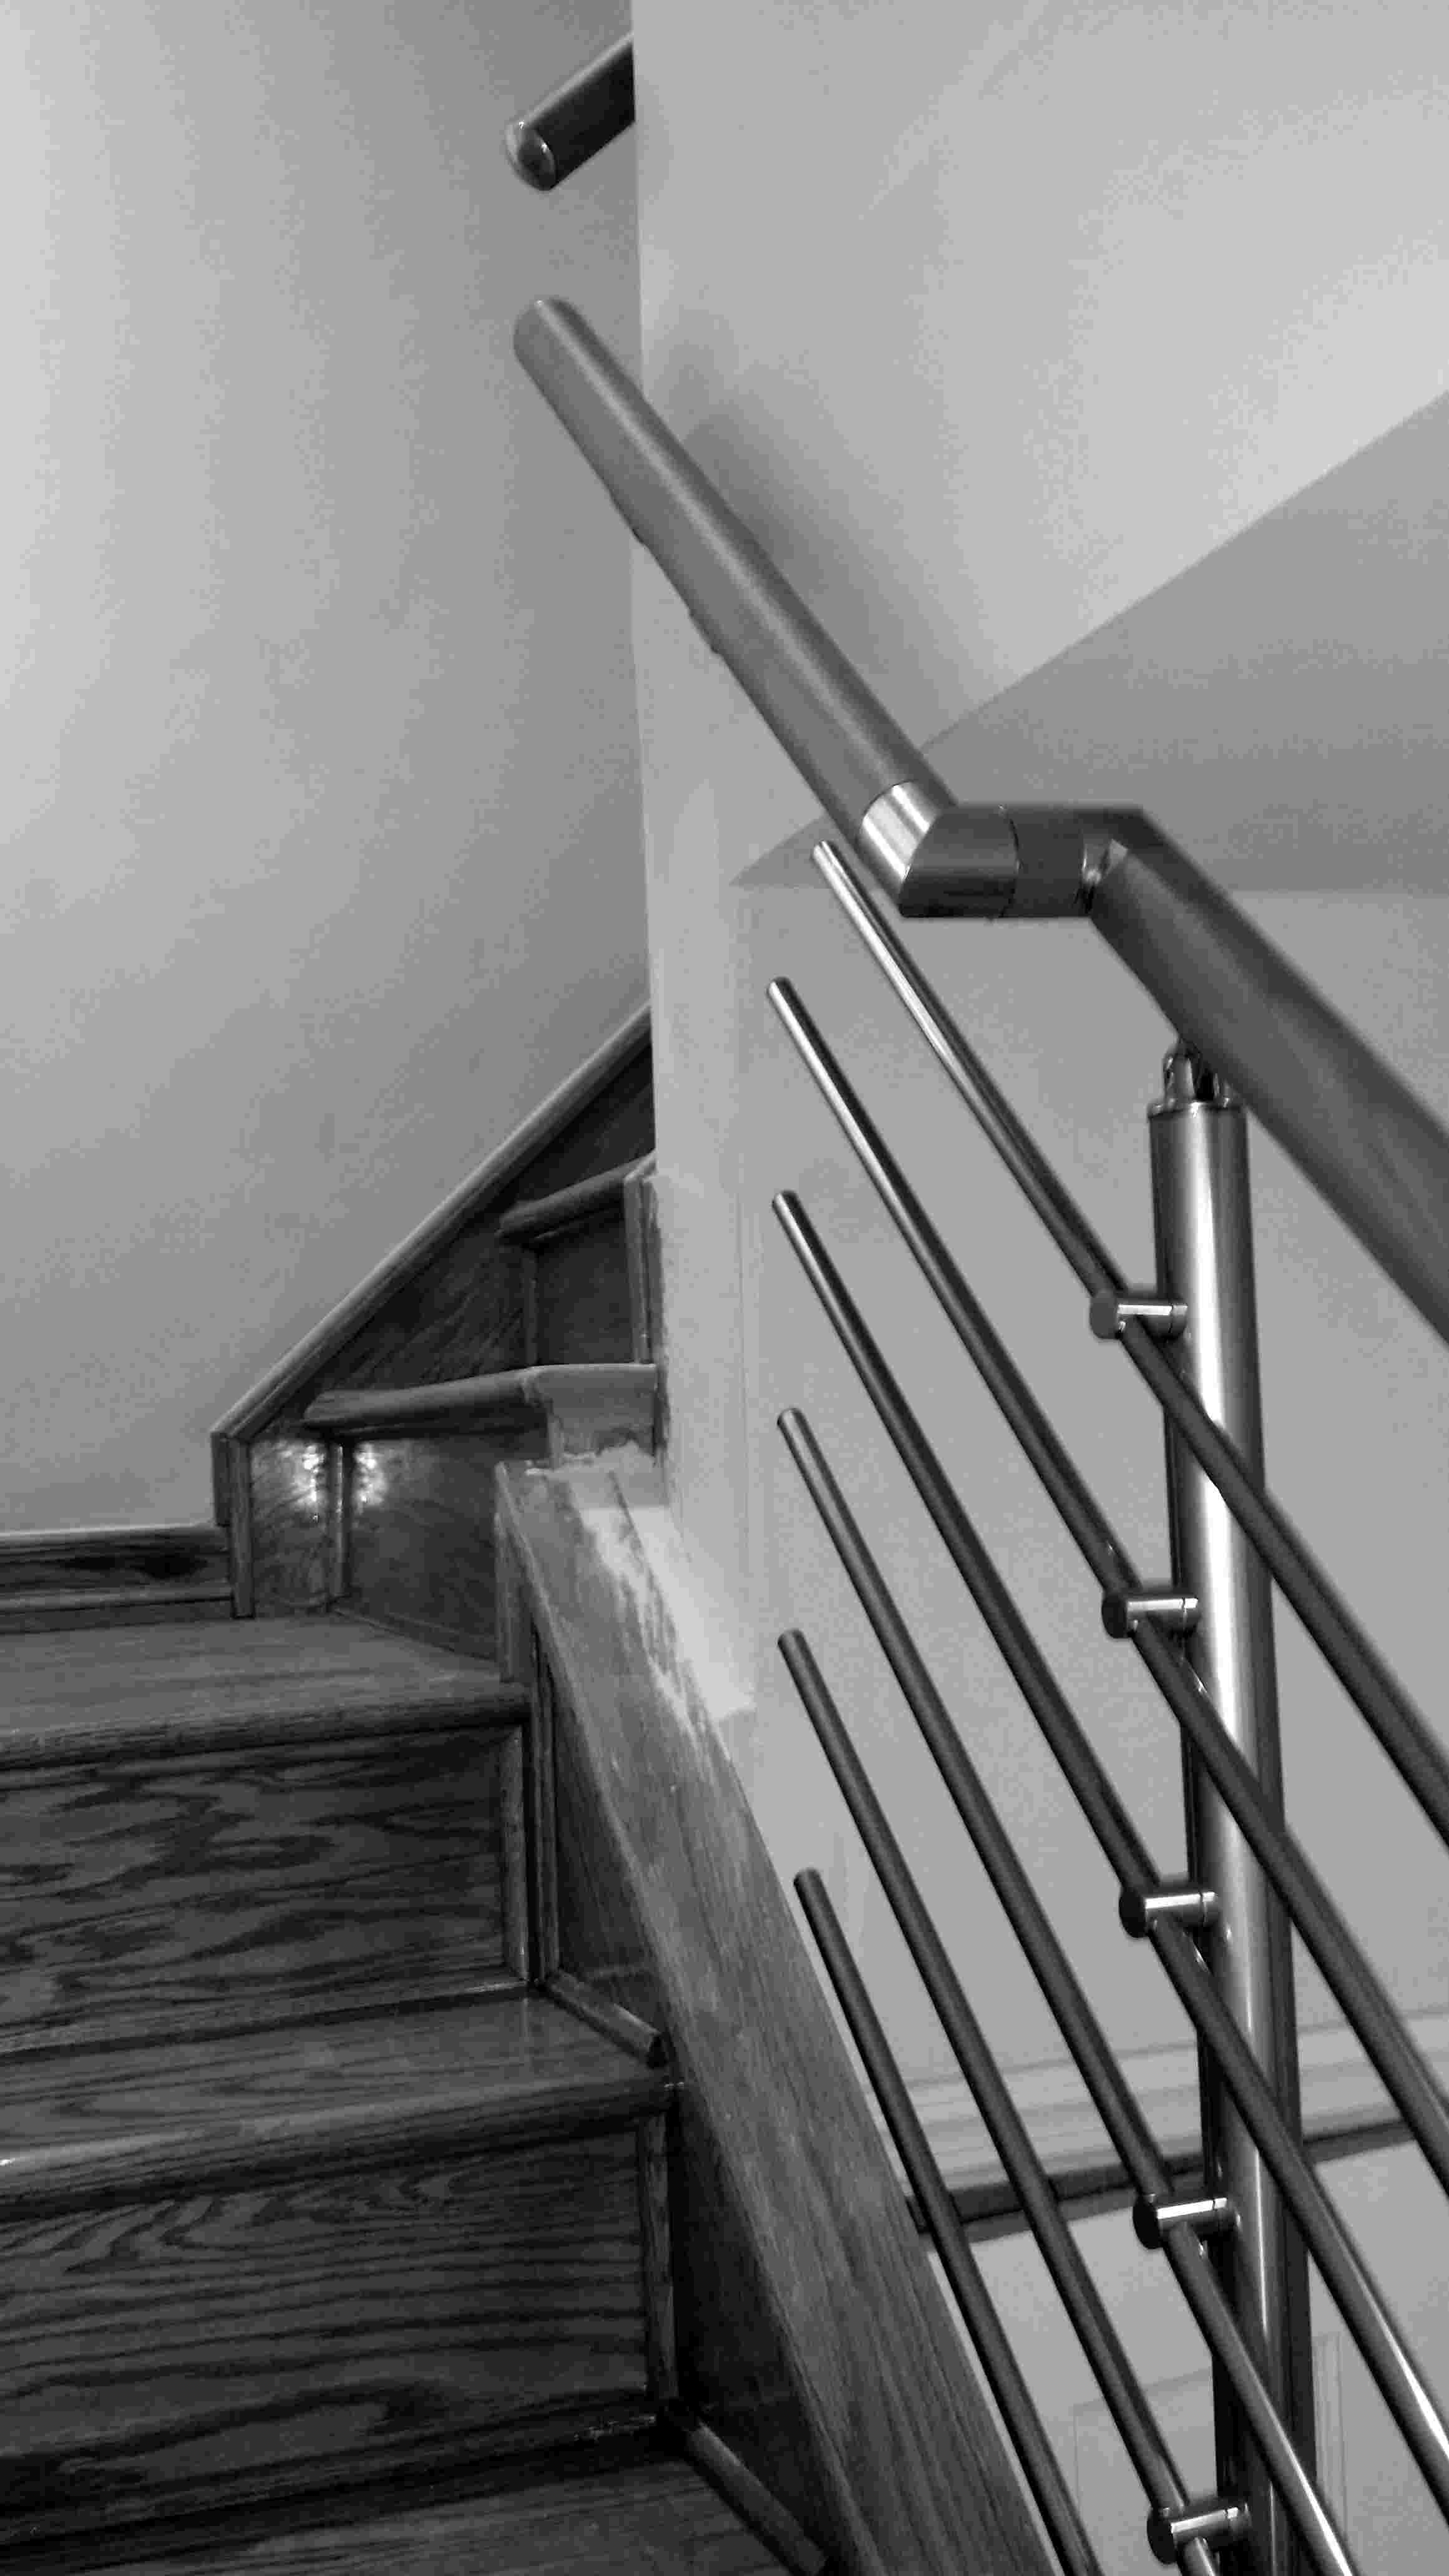 Interior Modern Narrow Staircase Railing System Railingco | Handrail For Narrow Staircase | Exterior | Self Standing Narrow | Free Standing | Victorian | Small Staircase